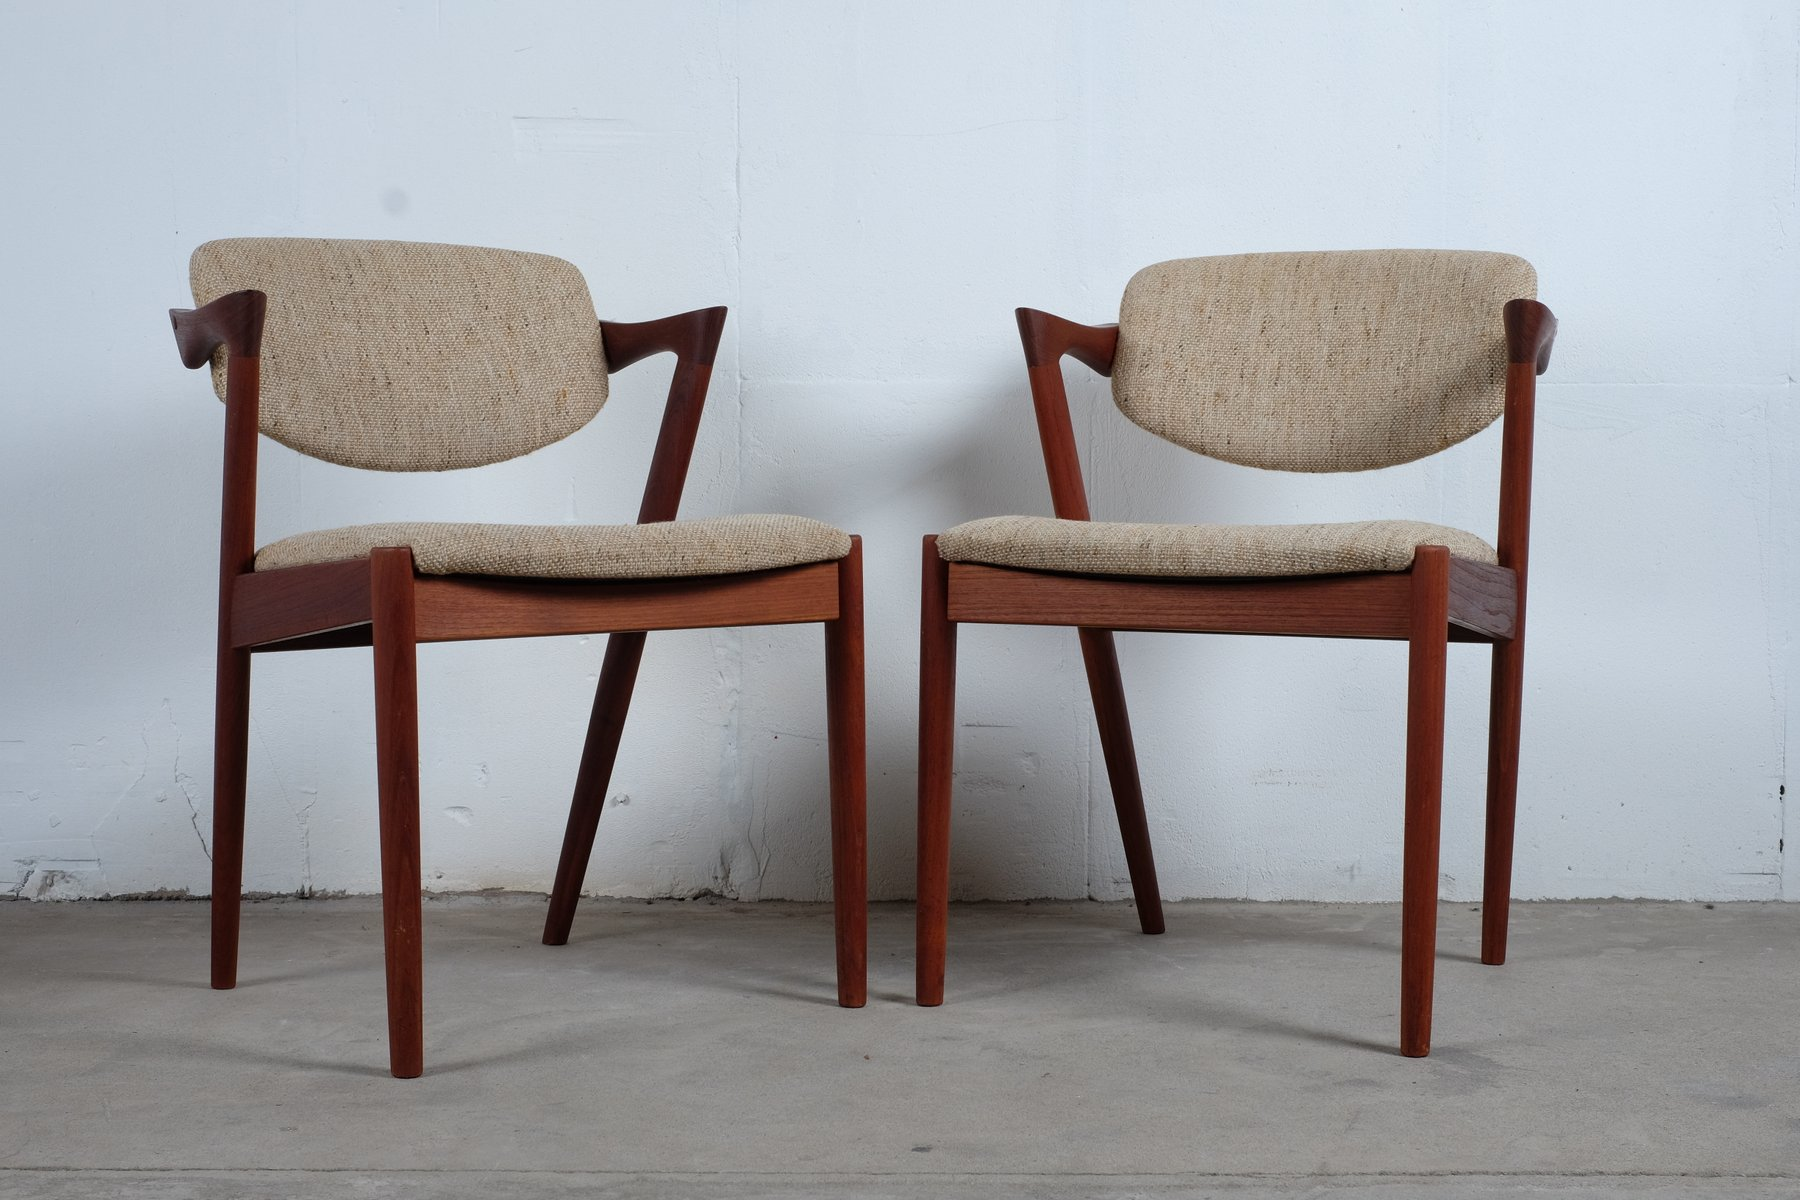 Vintage model 42 z chairs by kai kristiansen set of 2 for sale at pamono - Kai kristiansen chairs ...